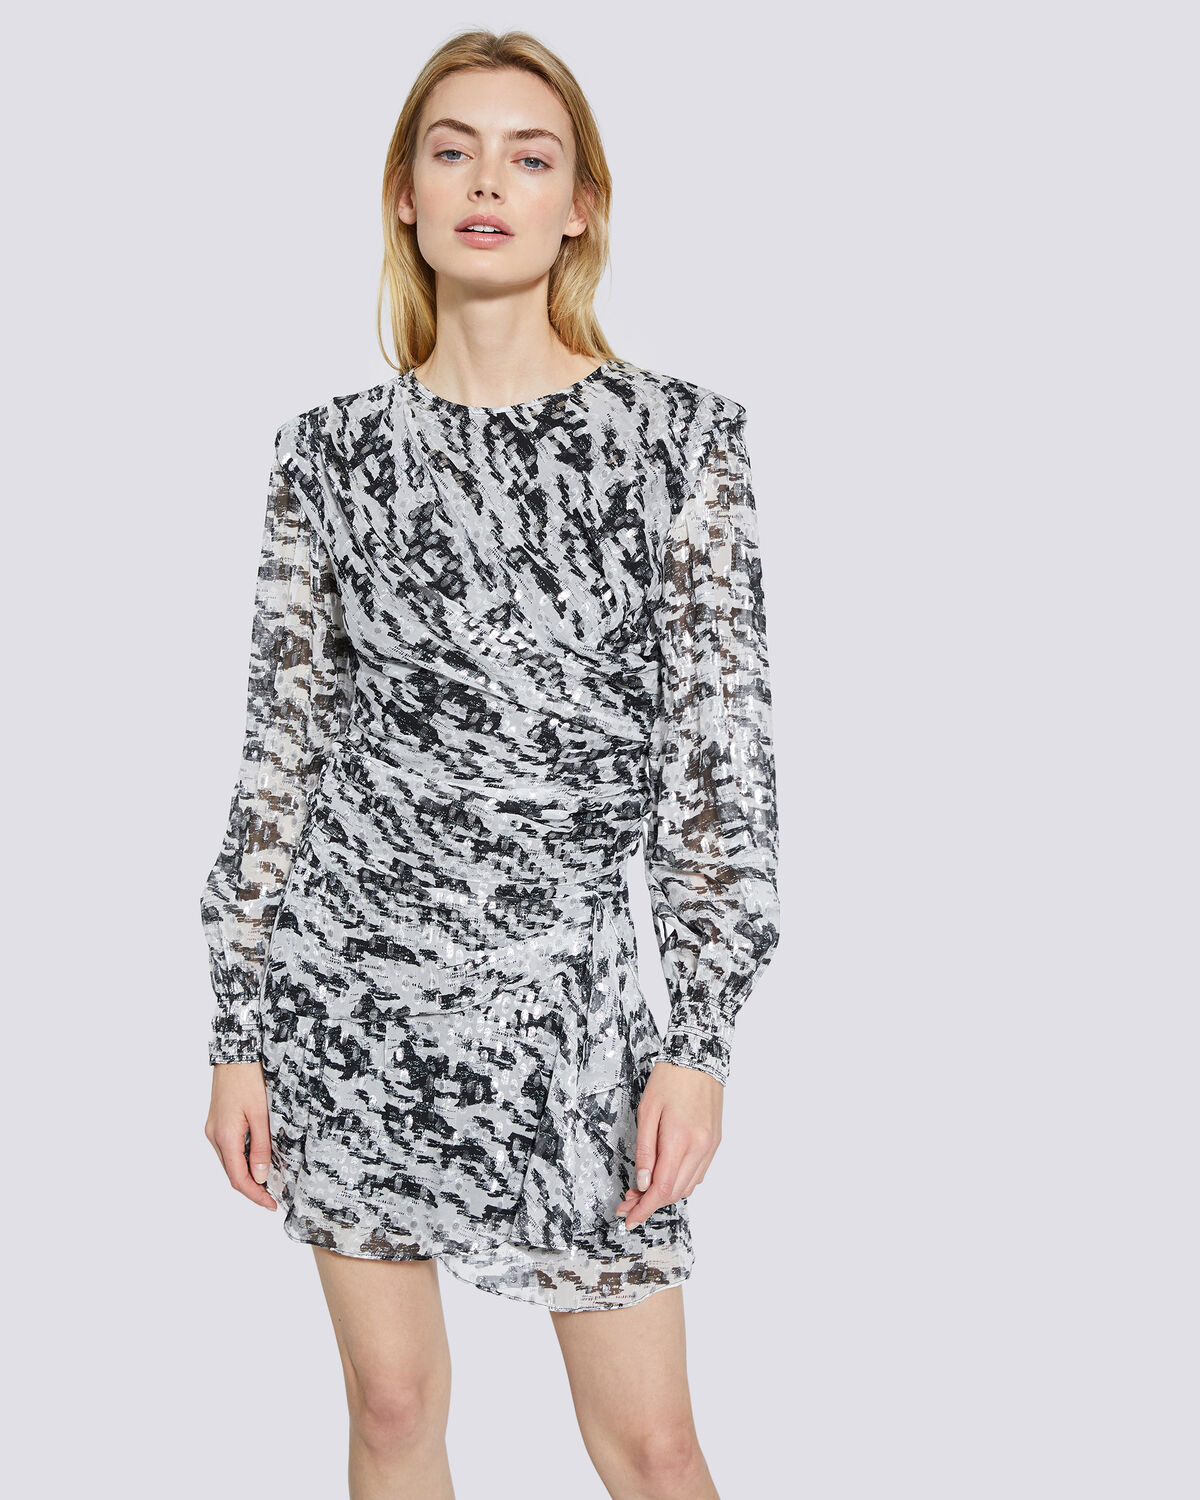 IRO - TOP IMPRIMÉ FIL DE LUREX KLEOK BLACK/WHITE/SILVER